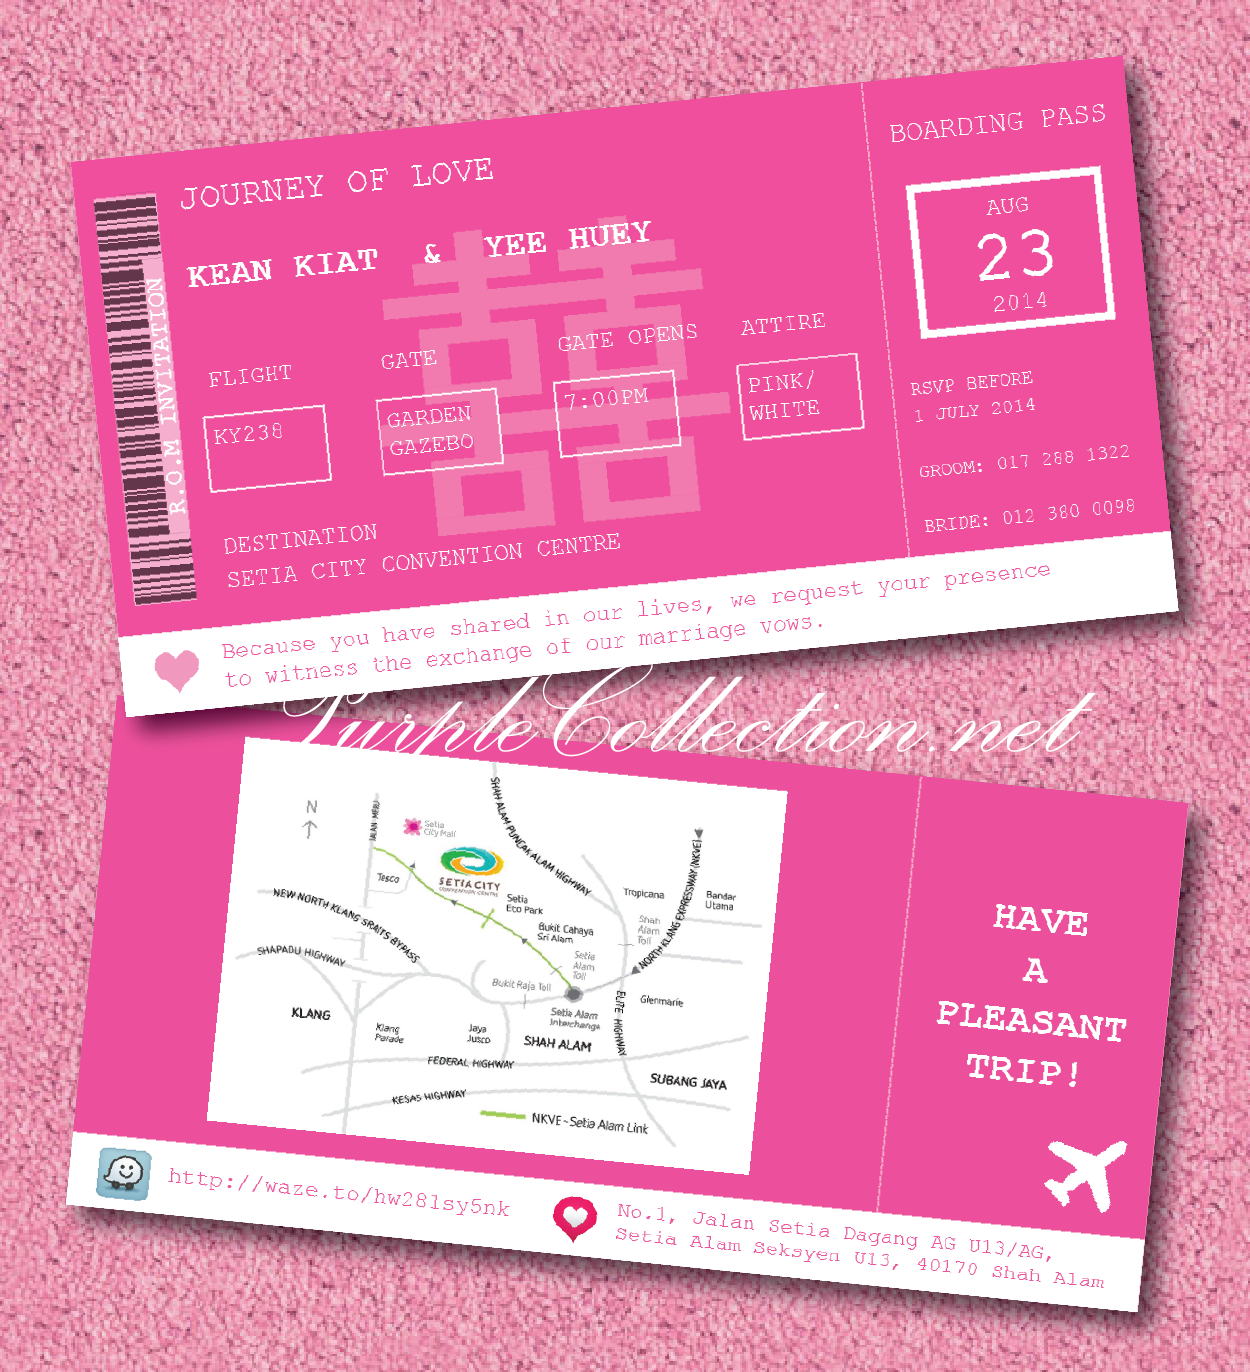 Magenta boarding pass wedding card wedding invitation cards wedding card malaysia by purplecollection modern invitation card stopboris Gallery